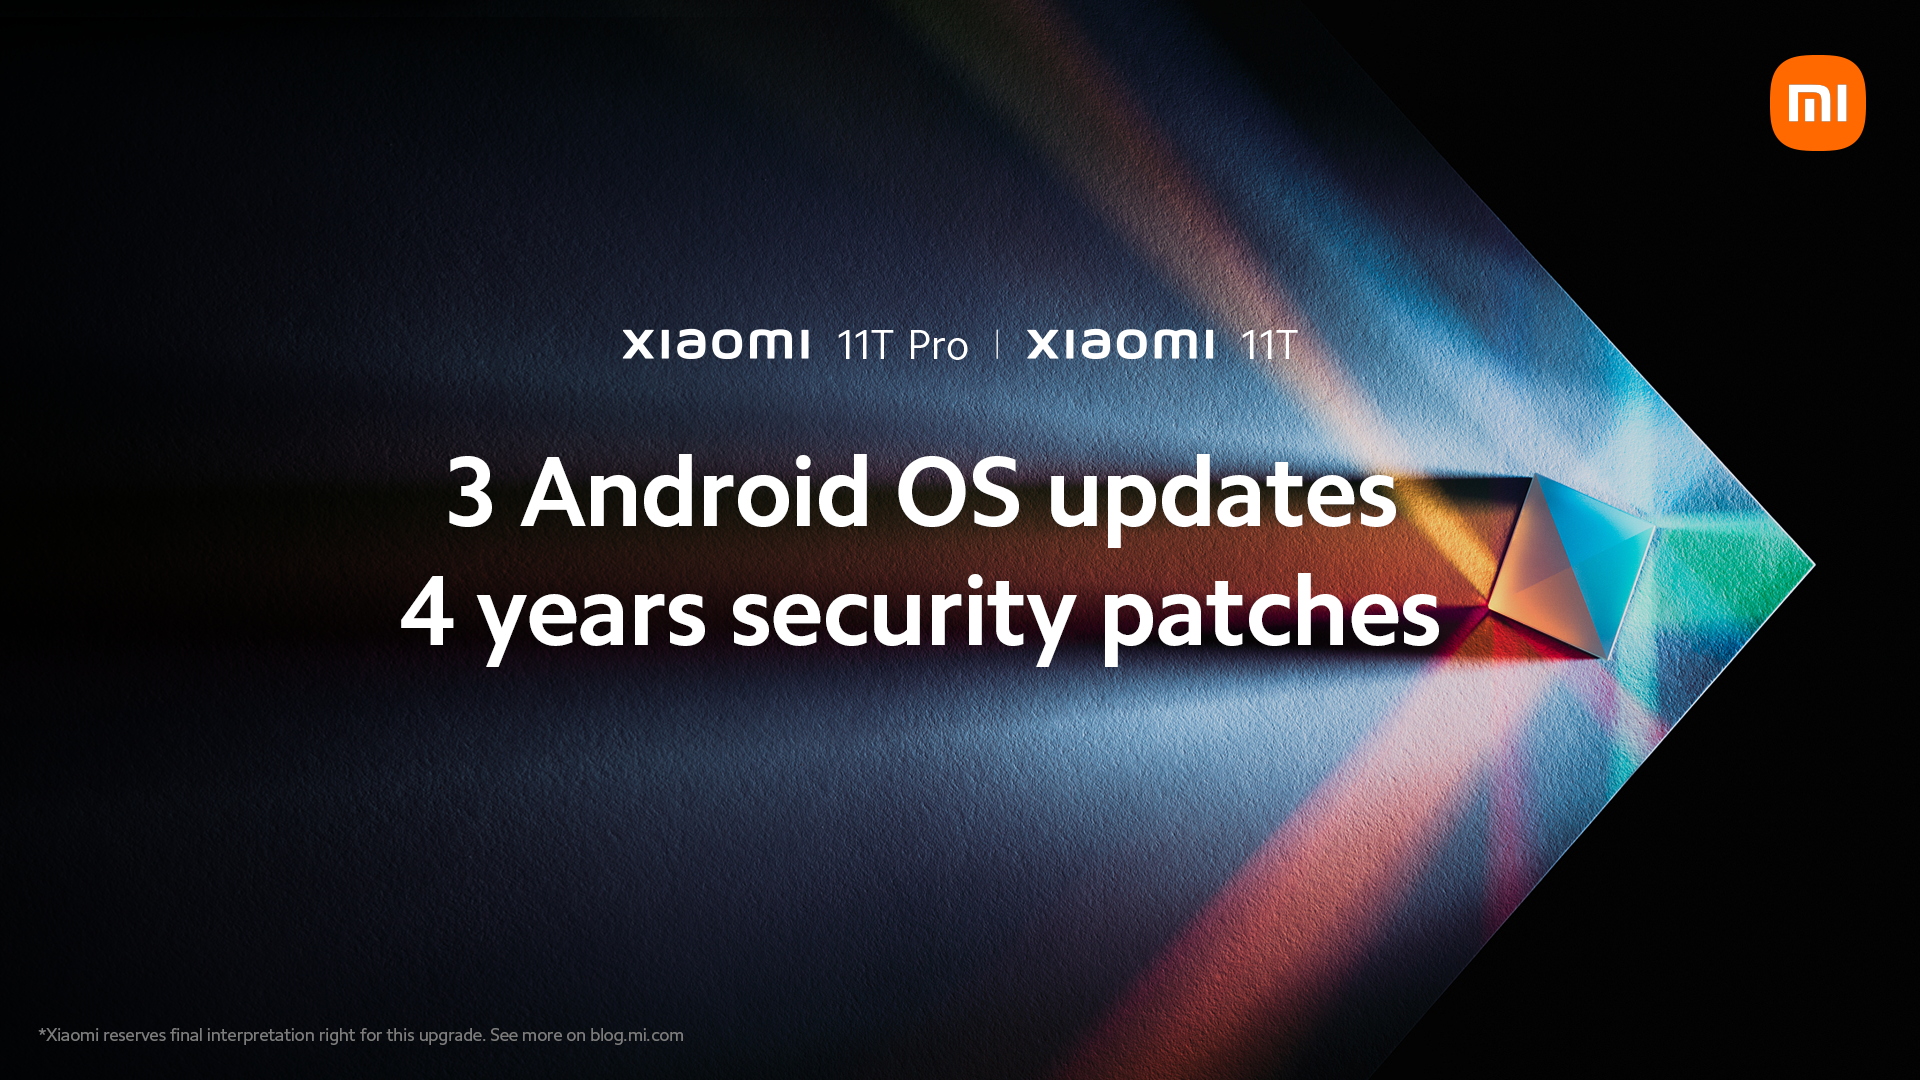 Xiaomi and 4 years updates